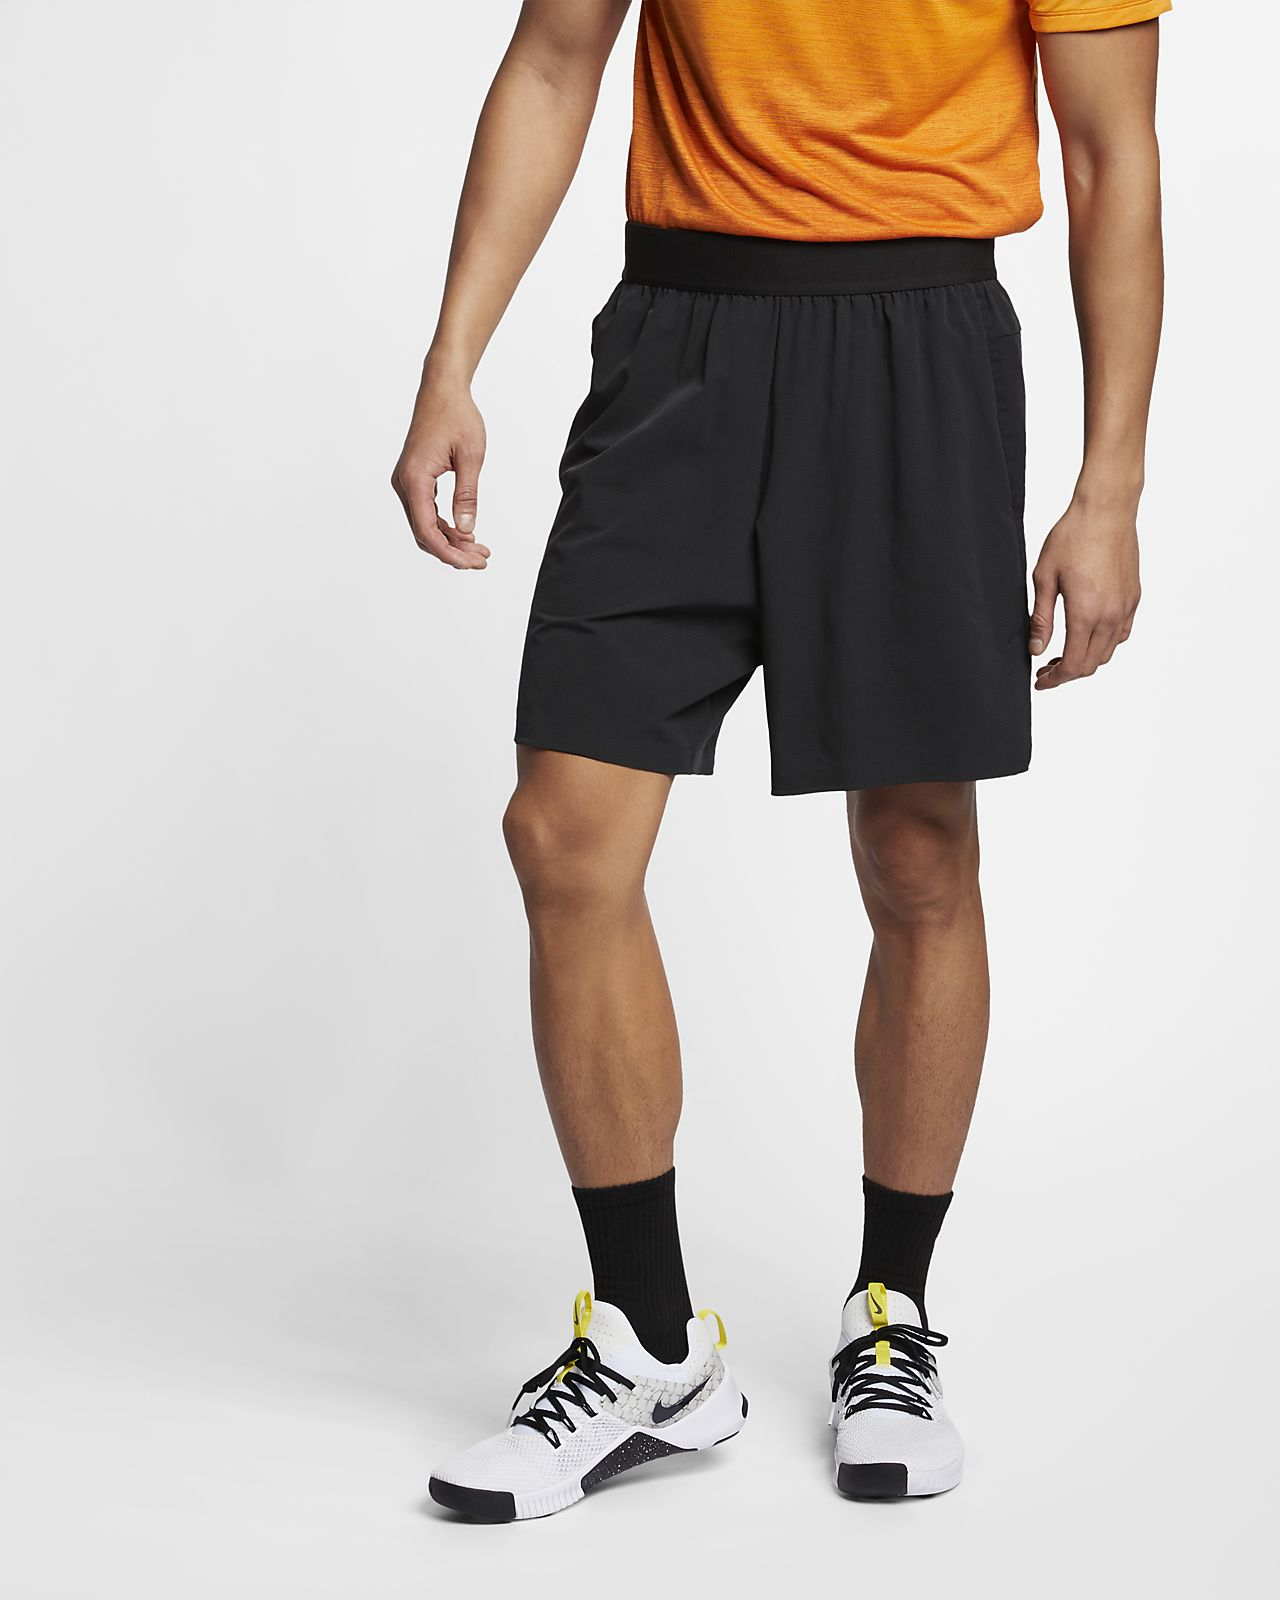 Short de training Nike Flex Tech Pack pour Homme